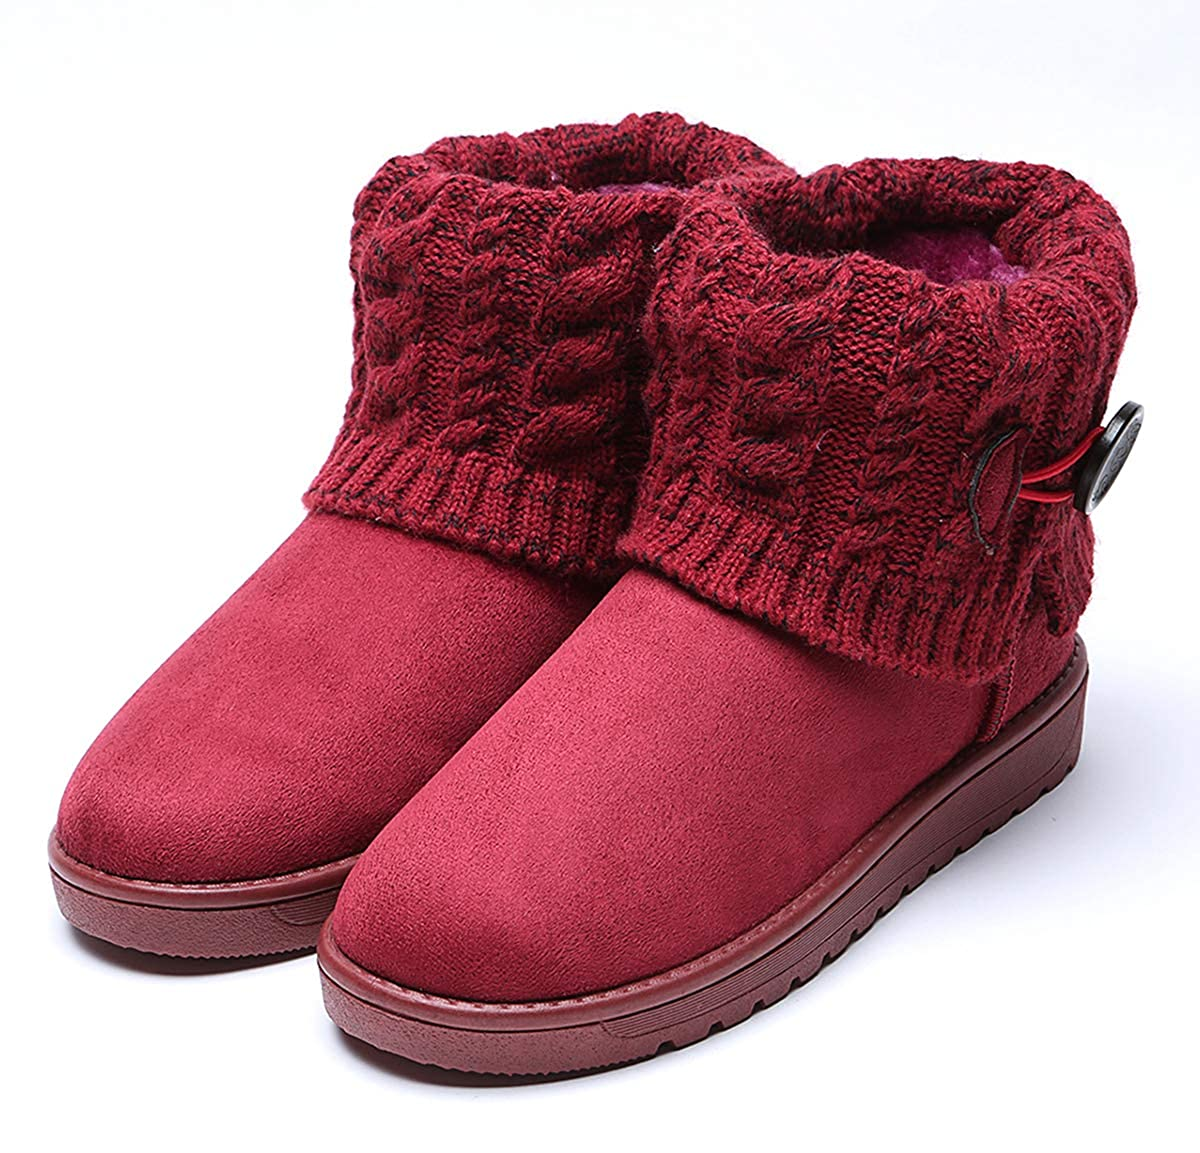 King Ma Womens Knitting Wool Flat Ankle Boots Winter Warm Snow Shoes